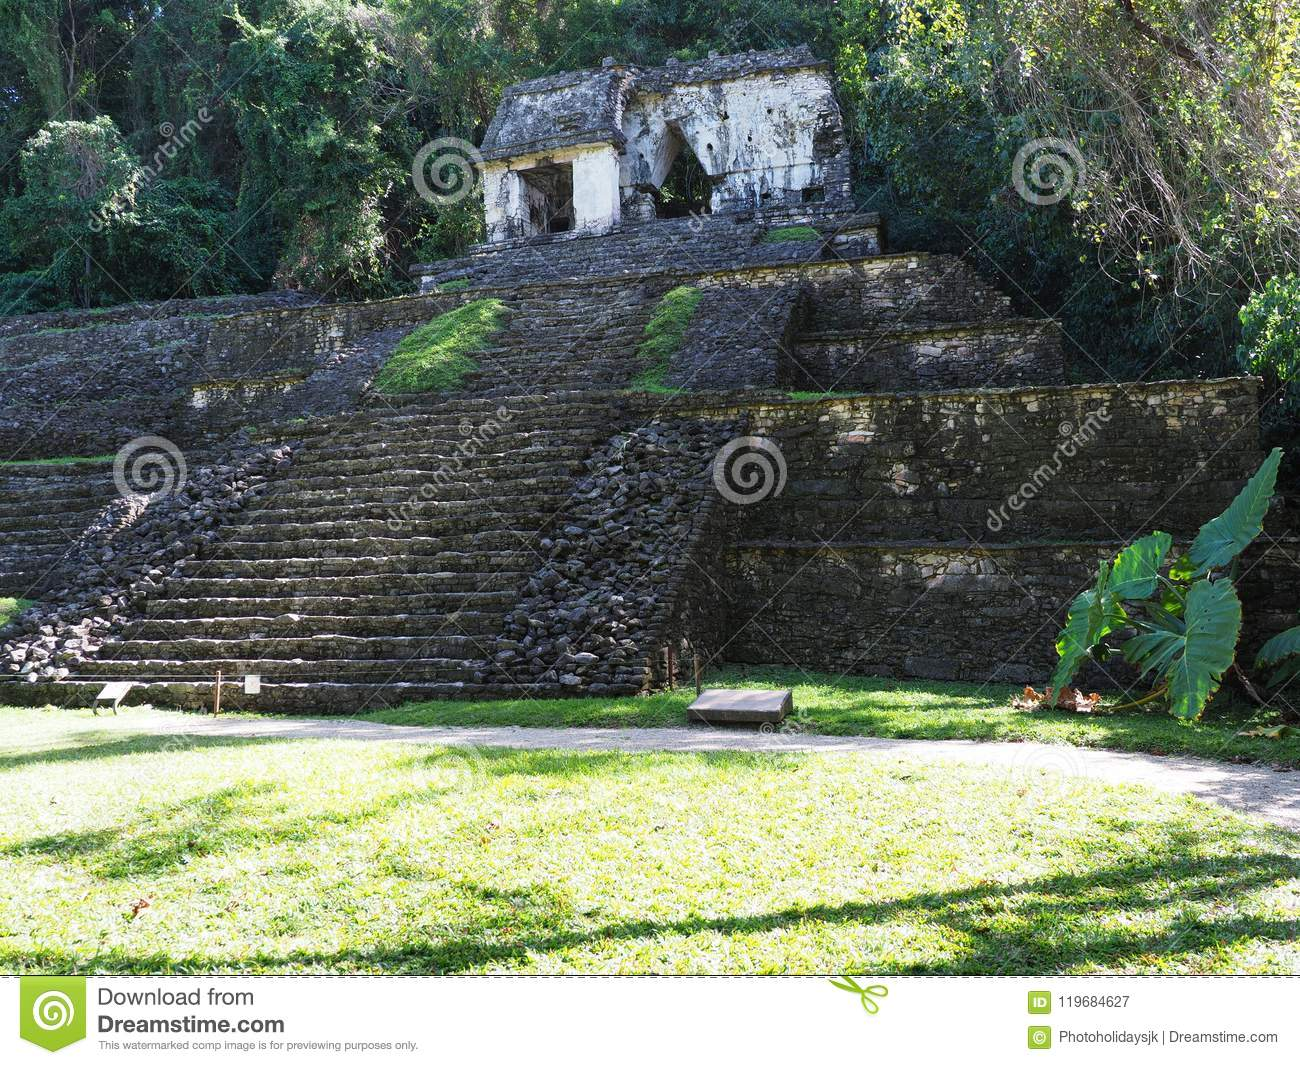 Impressive stony pyramid at ancient mayan National Park of Palenque city at Chiapas state in Mexico, landscape of jungle